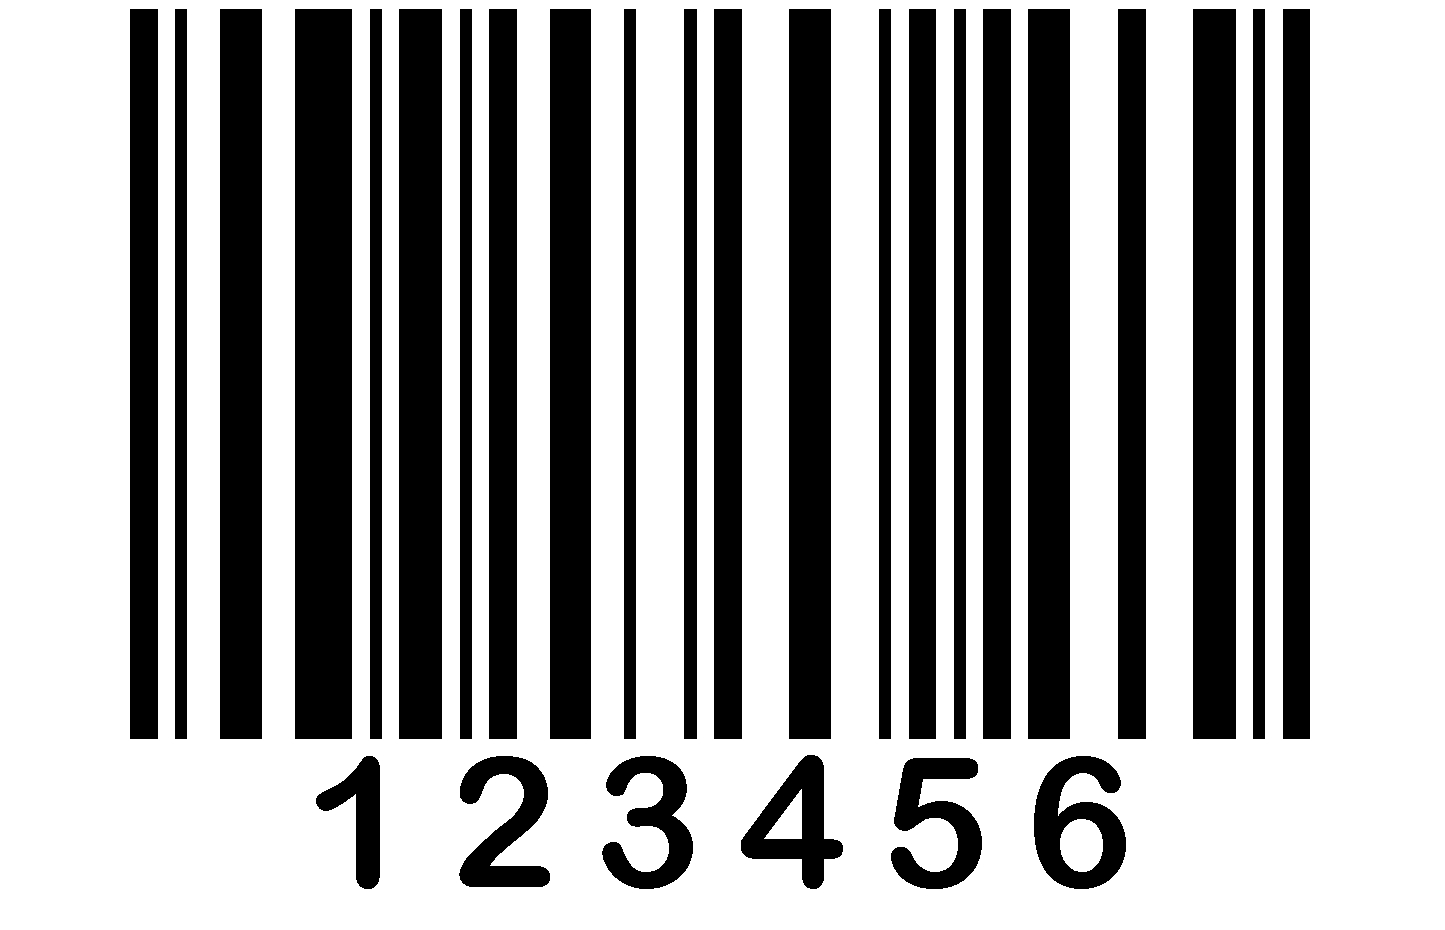 barcode clipart - photo #40